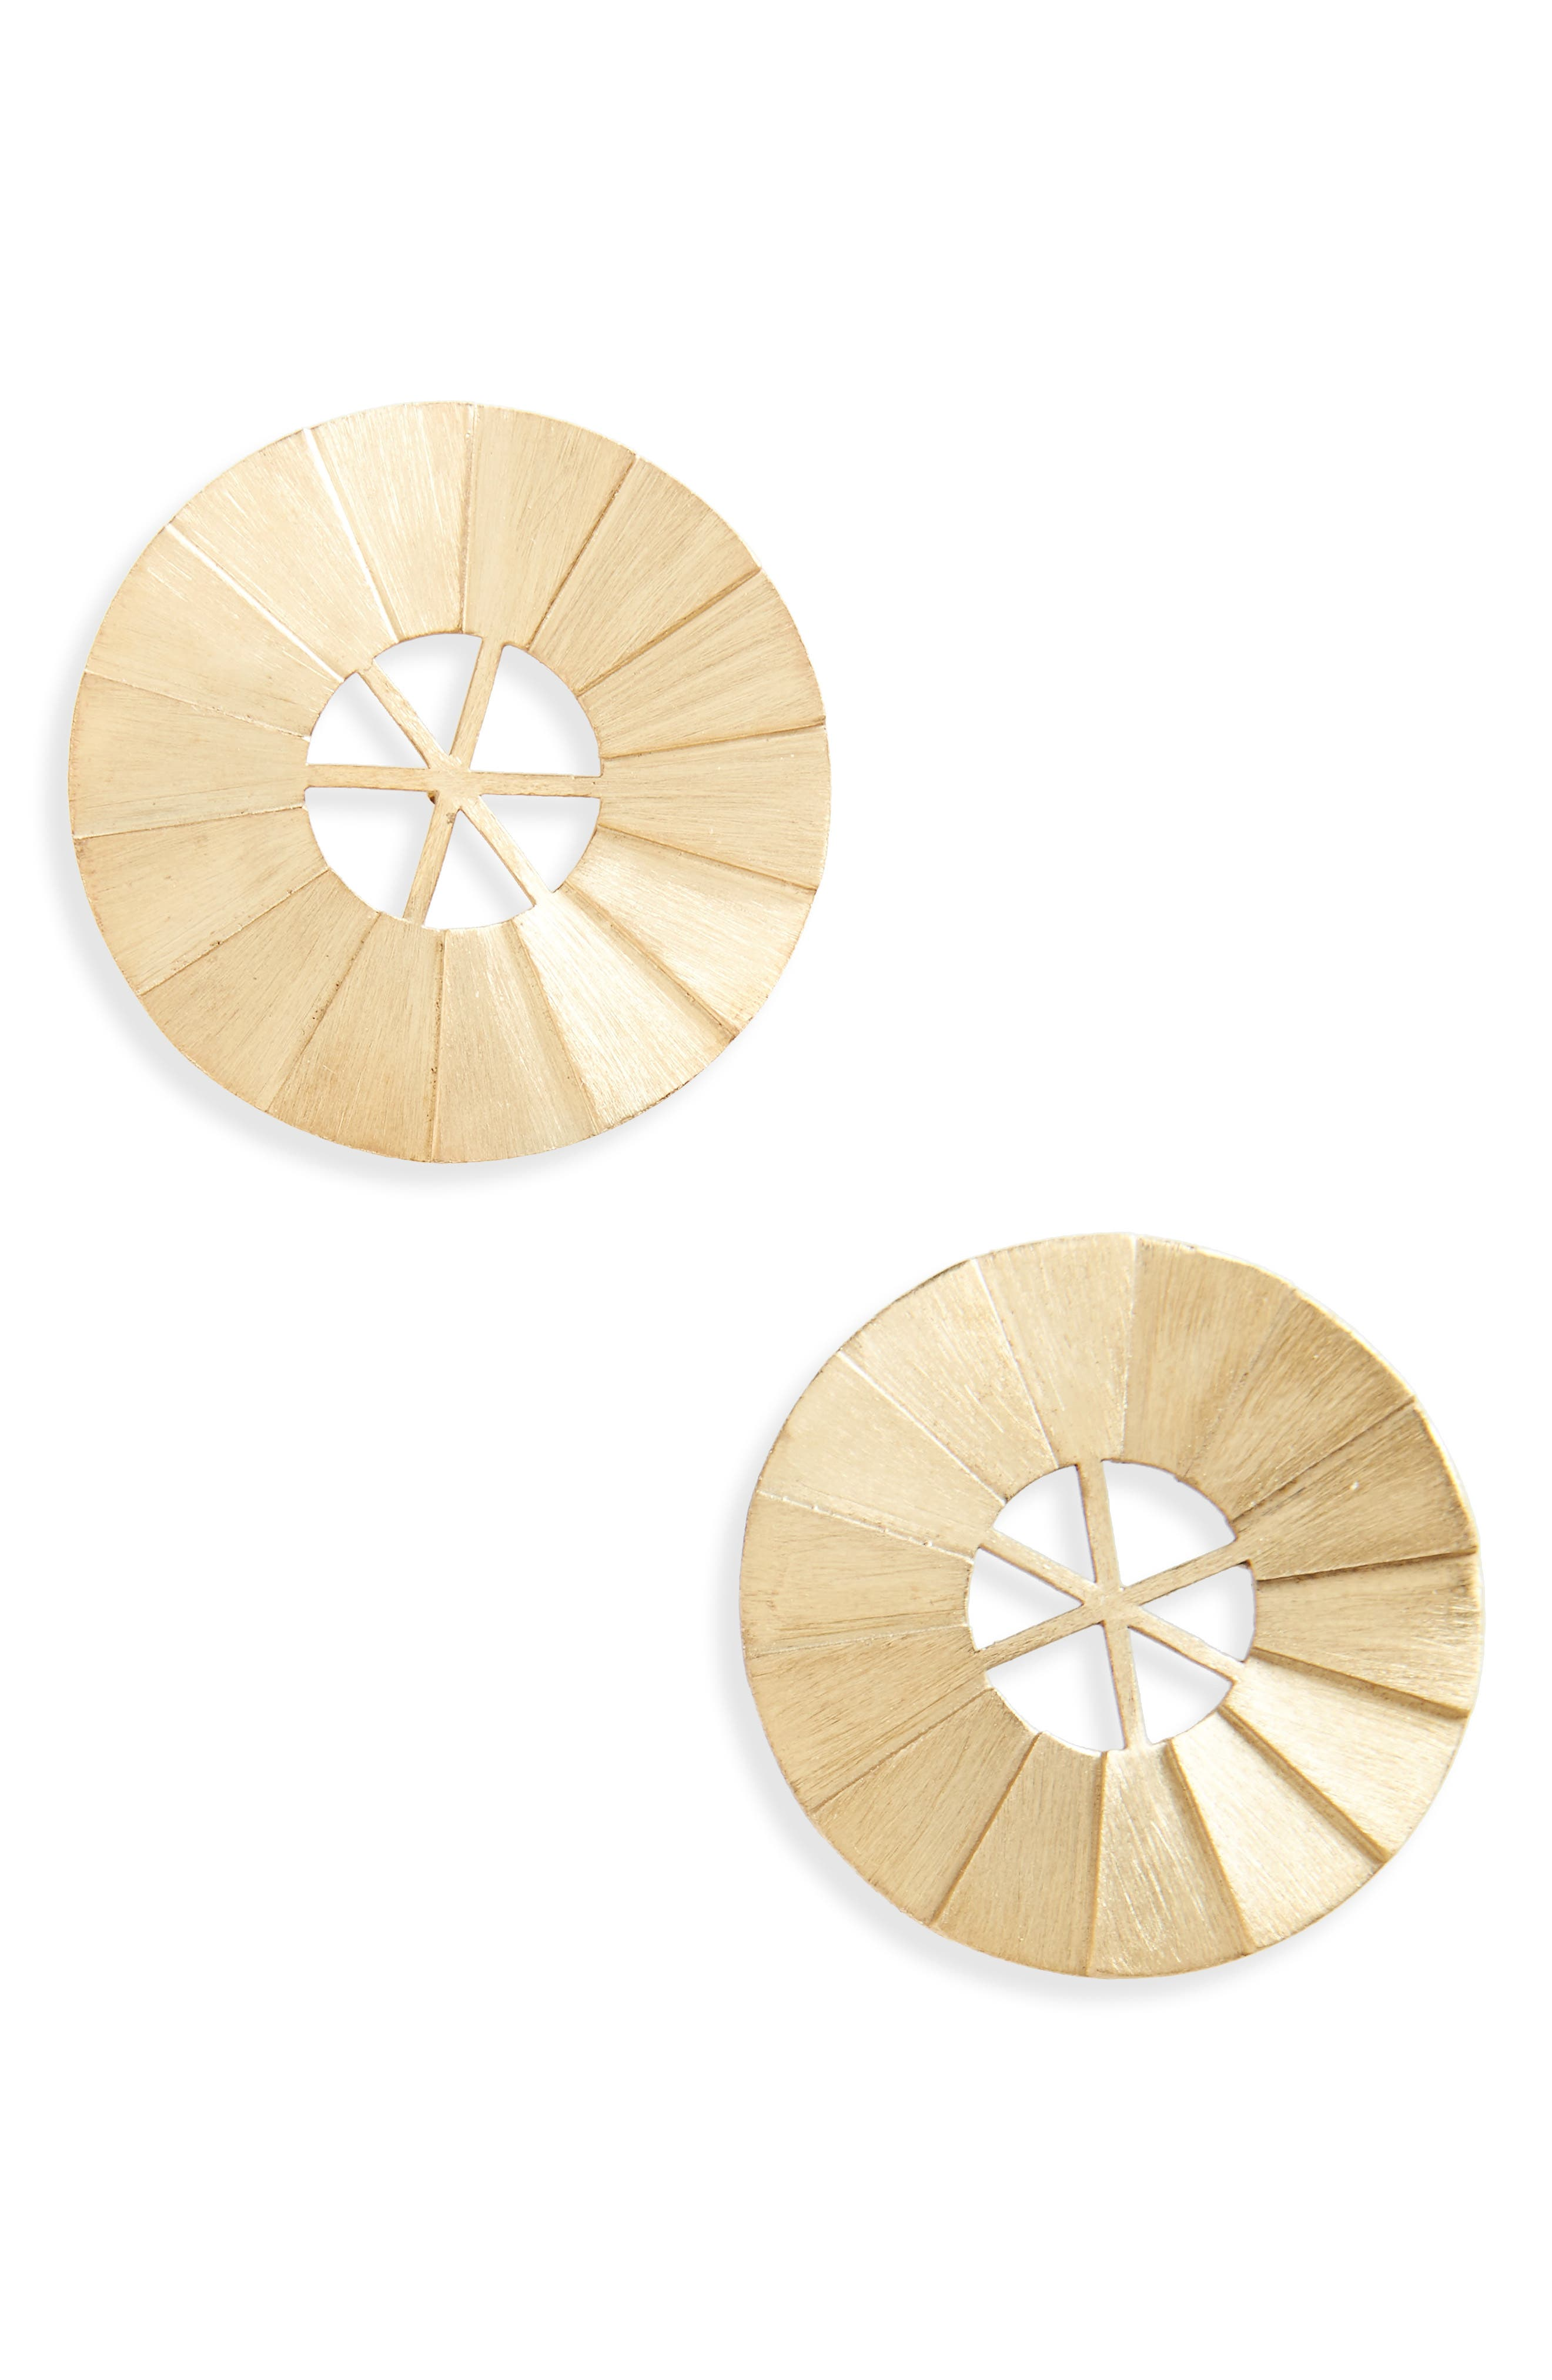 Windmill Brushed Vermeil Statement Earrings,                             Main thumbnail 1, color,                             BRUSHED VERMEIL